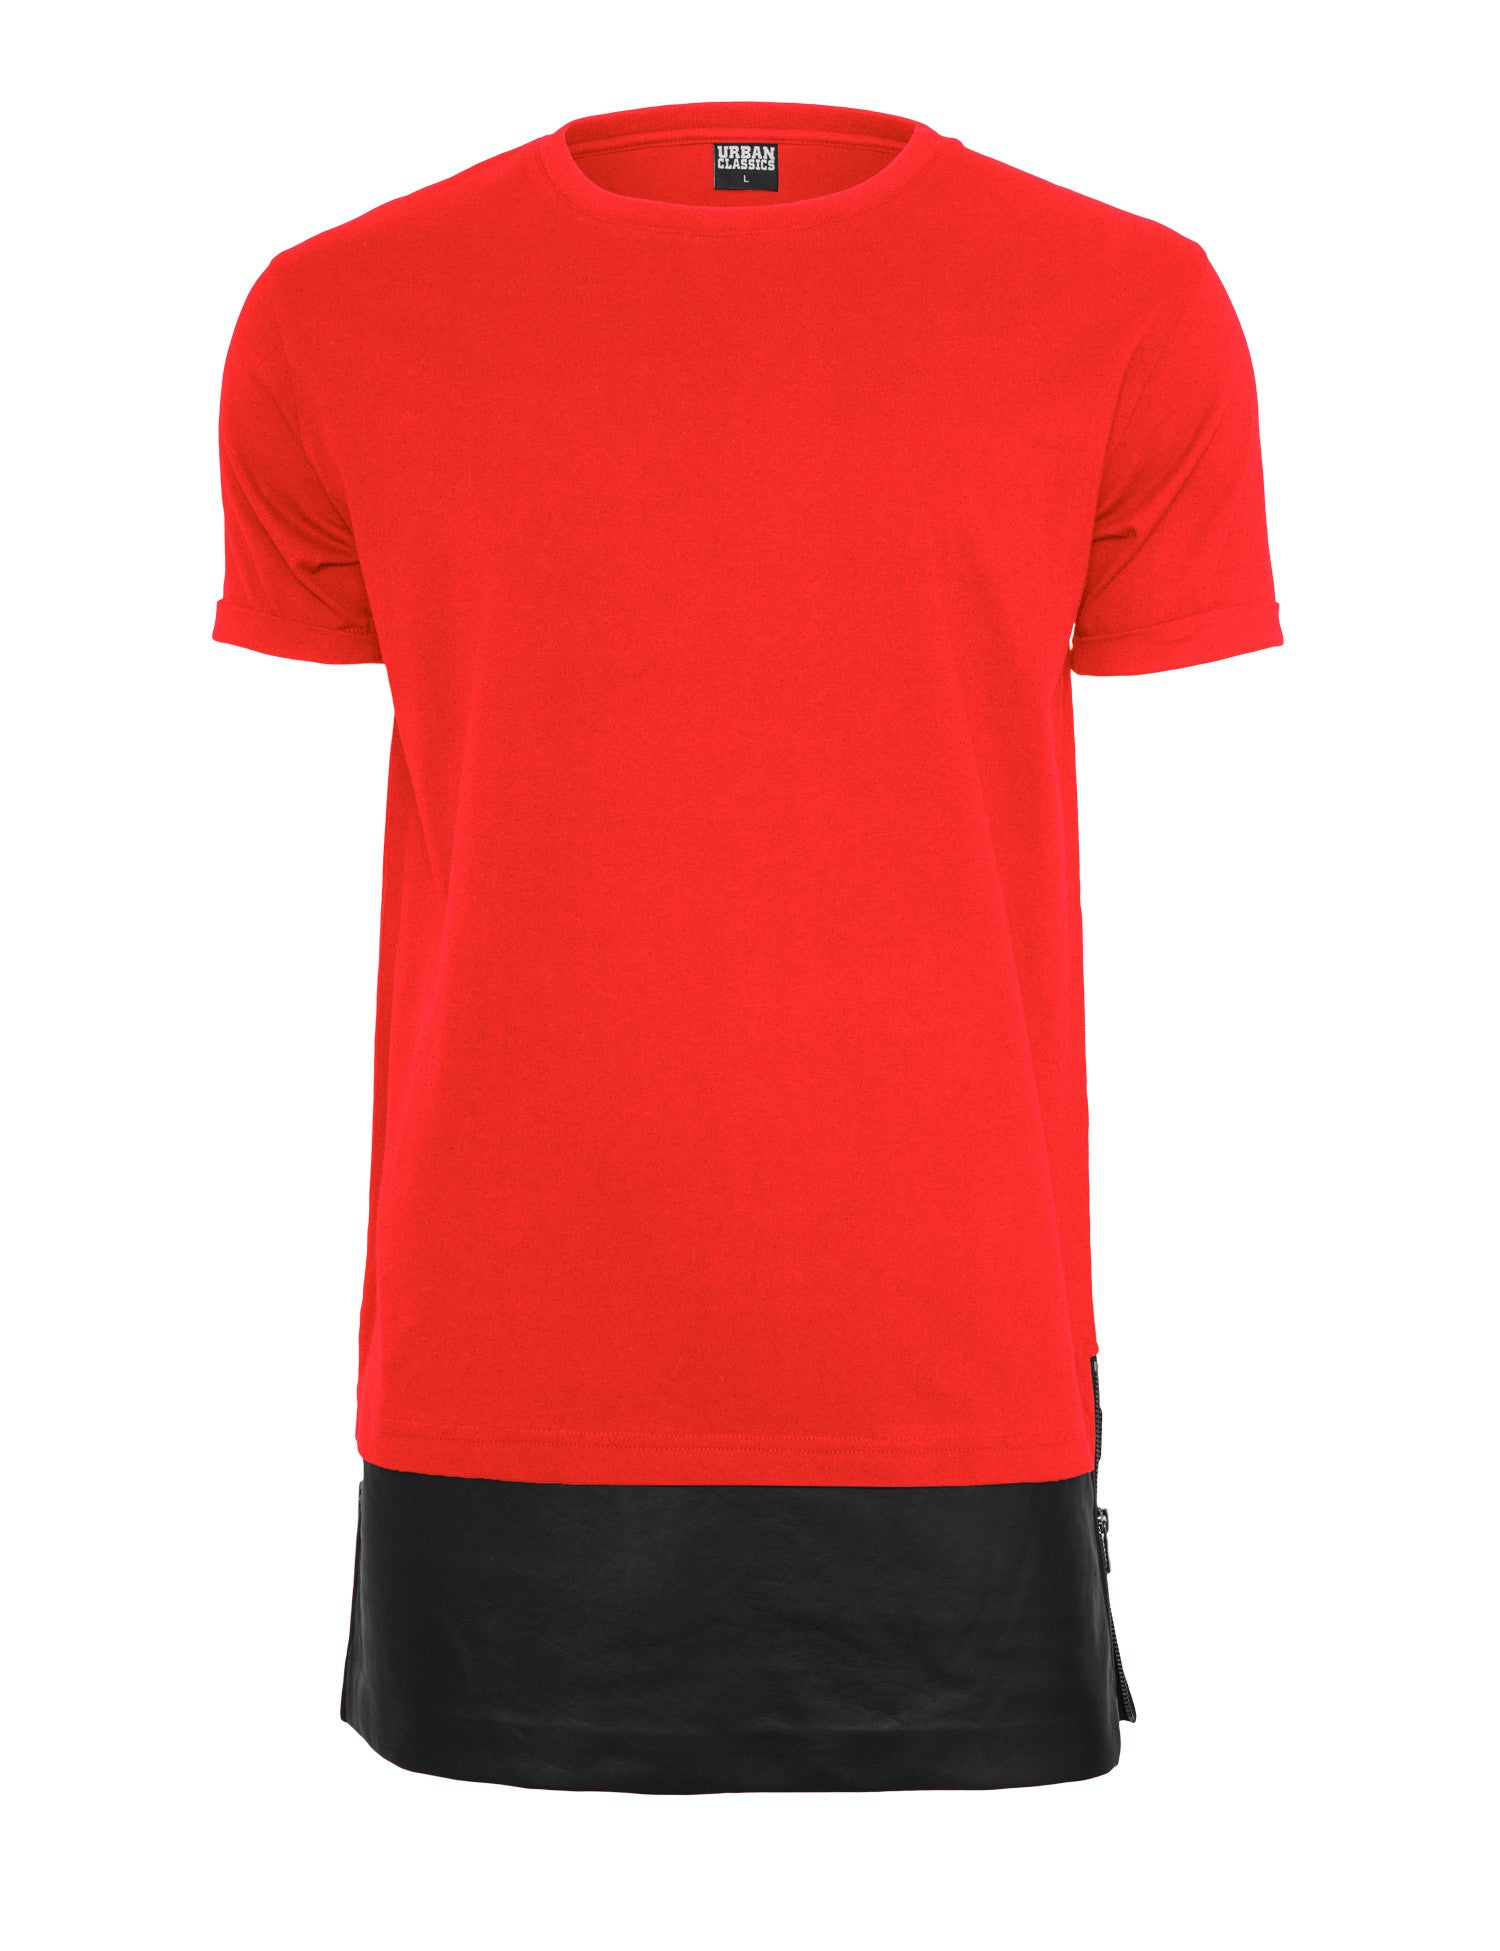 Long Zipped Leather Imitation Bottom Tee TB818 Red